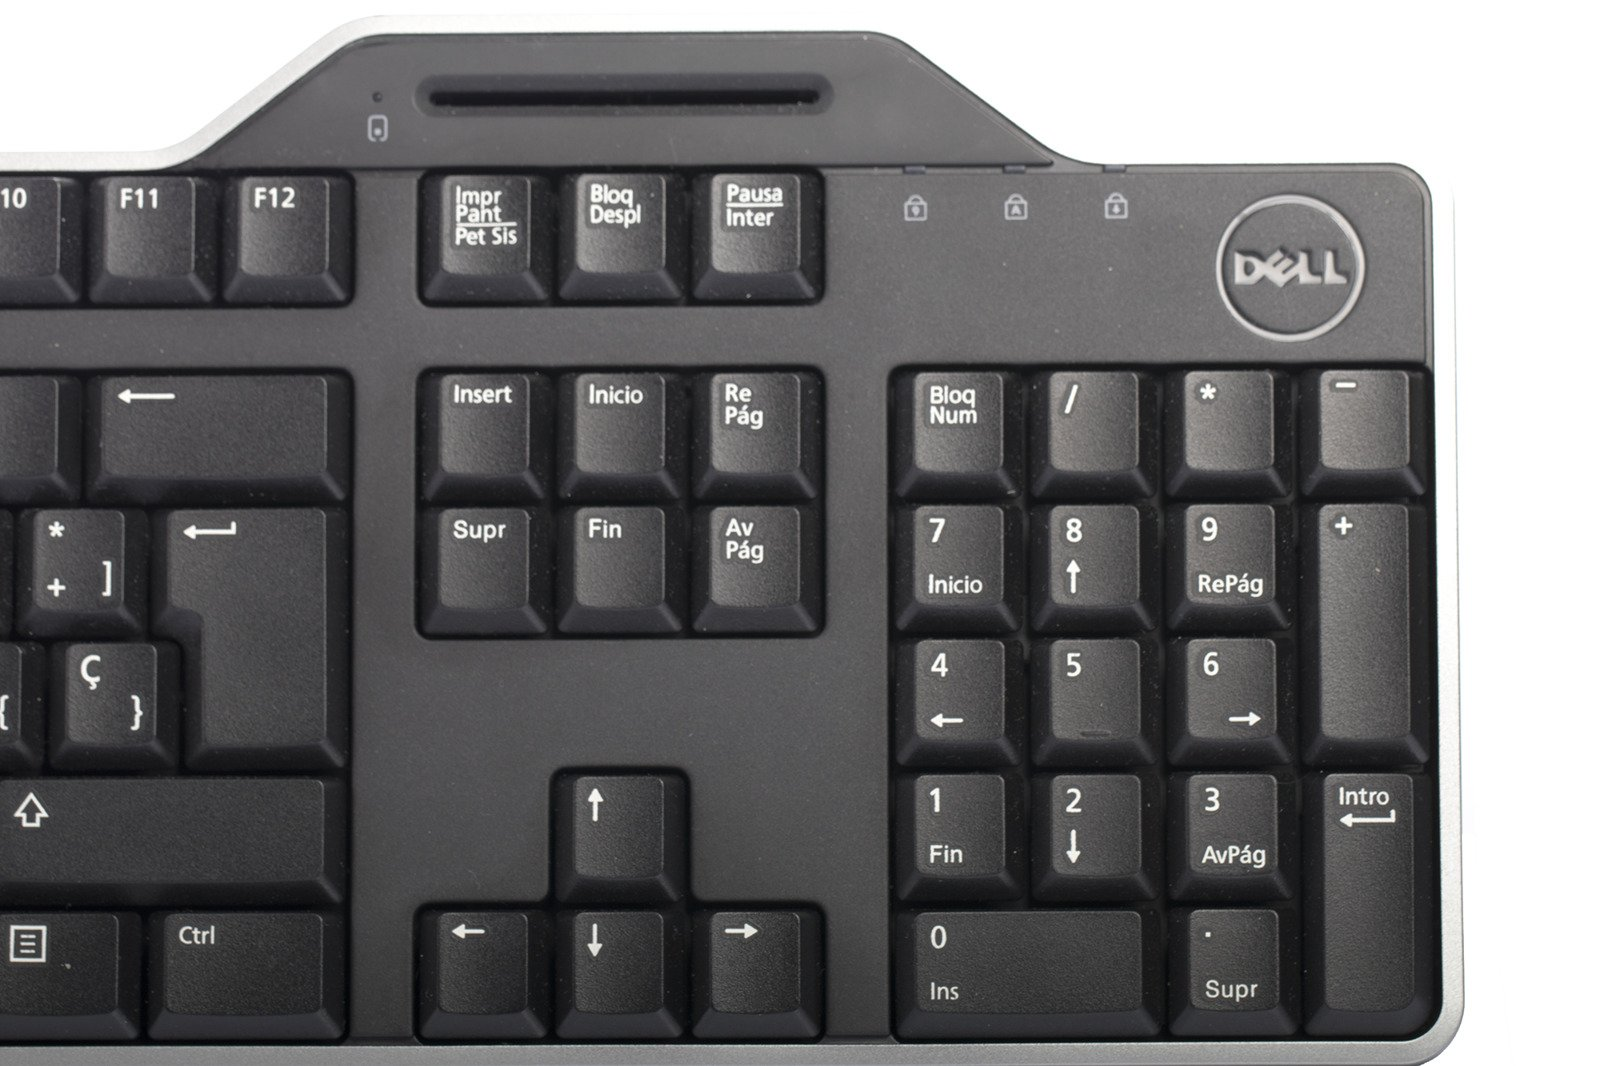 Dell Laptop Keyboard Diagram Images Pictures Becuo